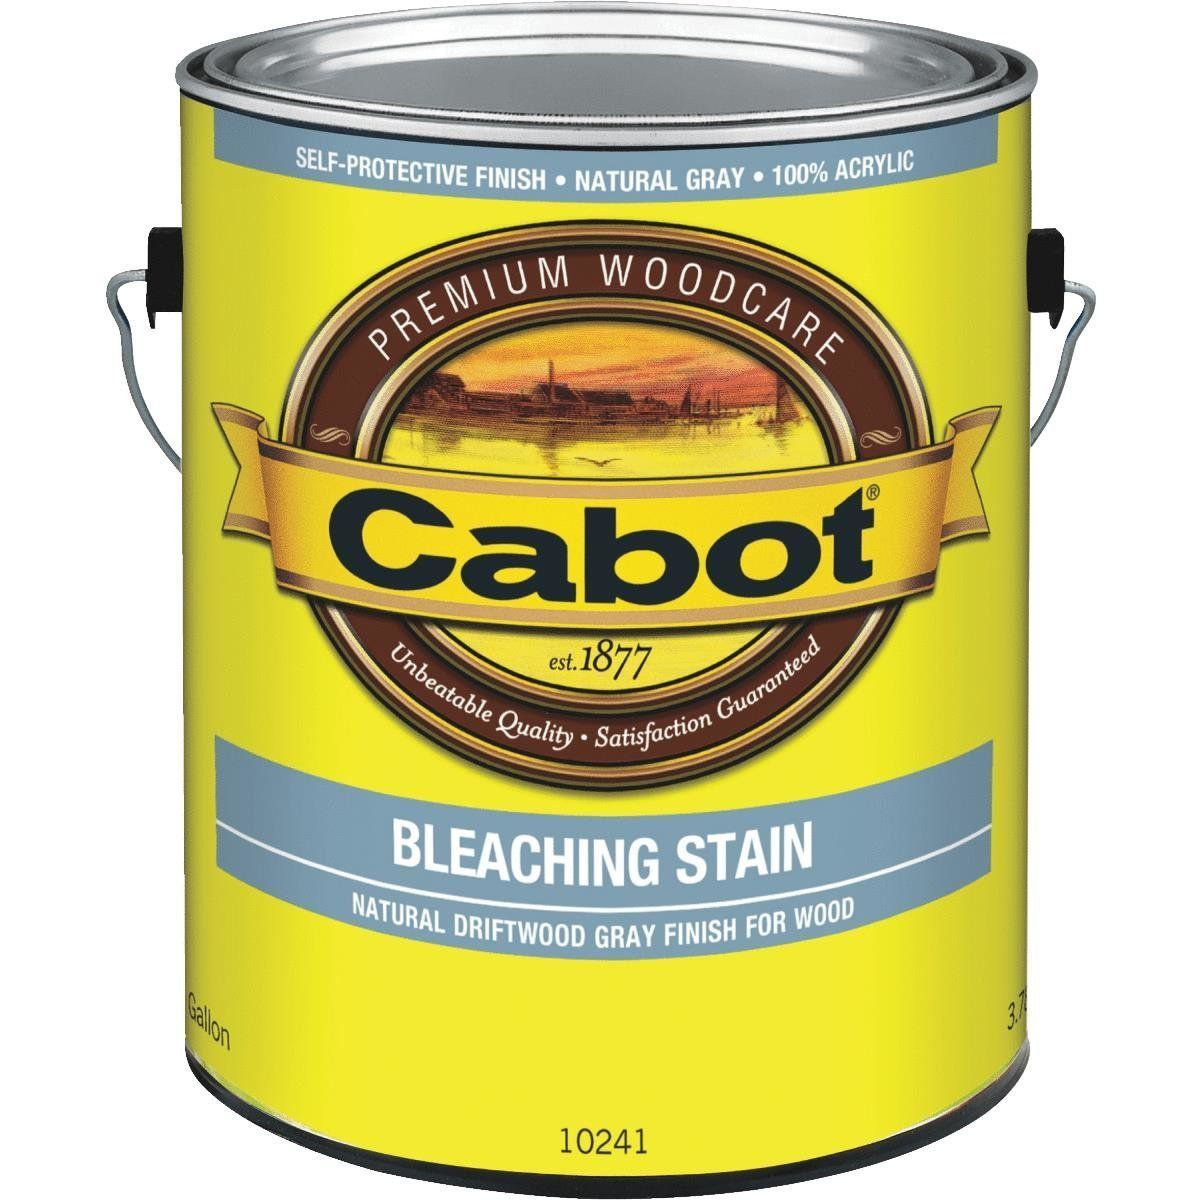 Cabot Weathered Look Exterior Bleaching Stain 140 0010241 007 Exterior Stain Staining Deck Solid Stain